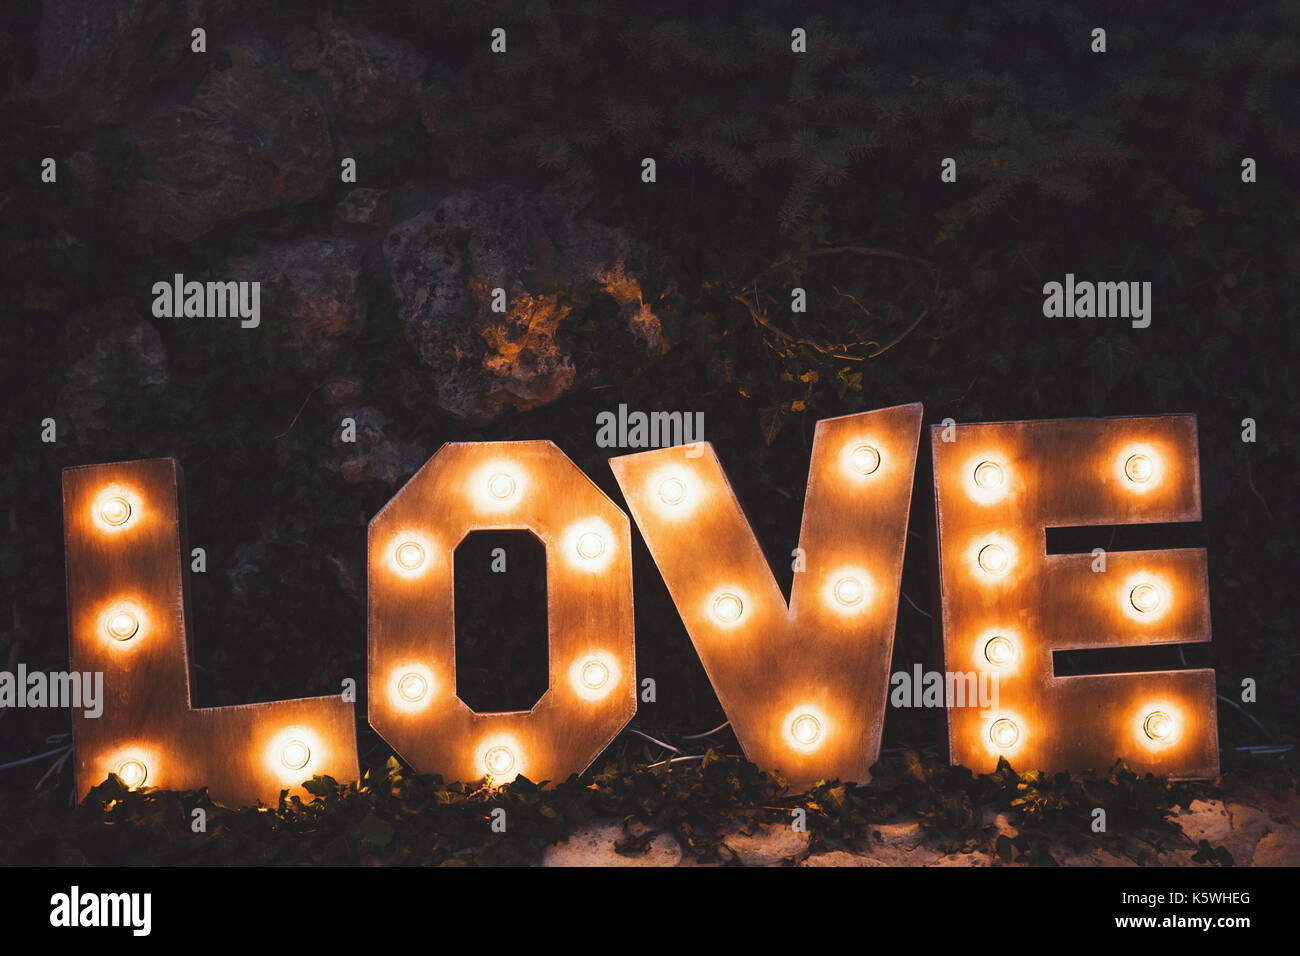 Word love consisting of the letters highlighted with bulbs standing on lawn at night - Stock Image